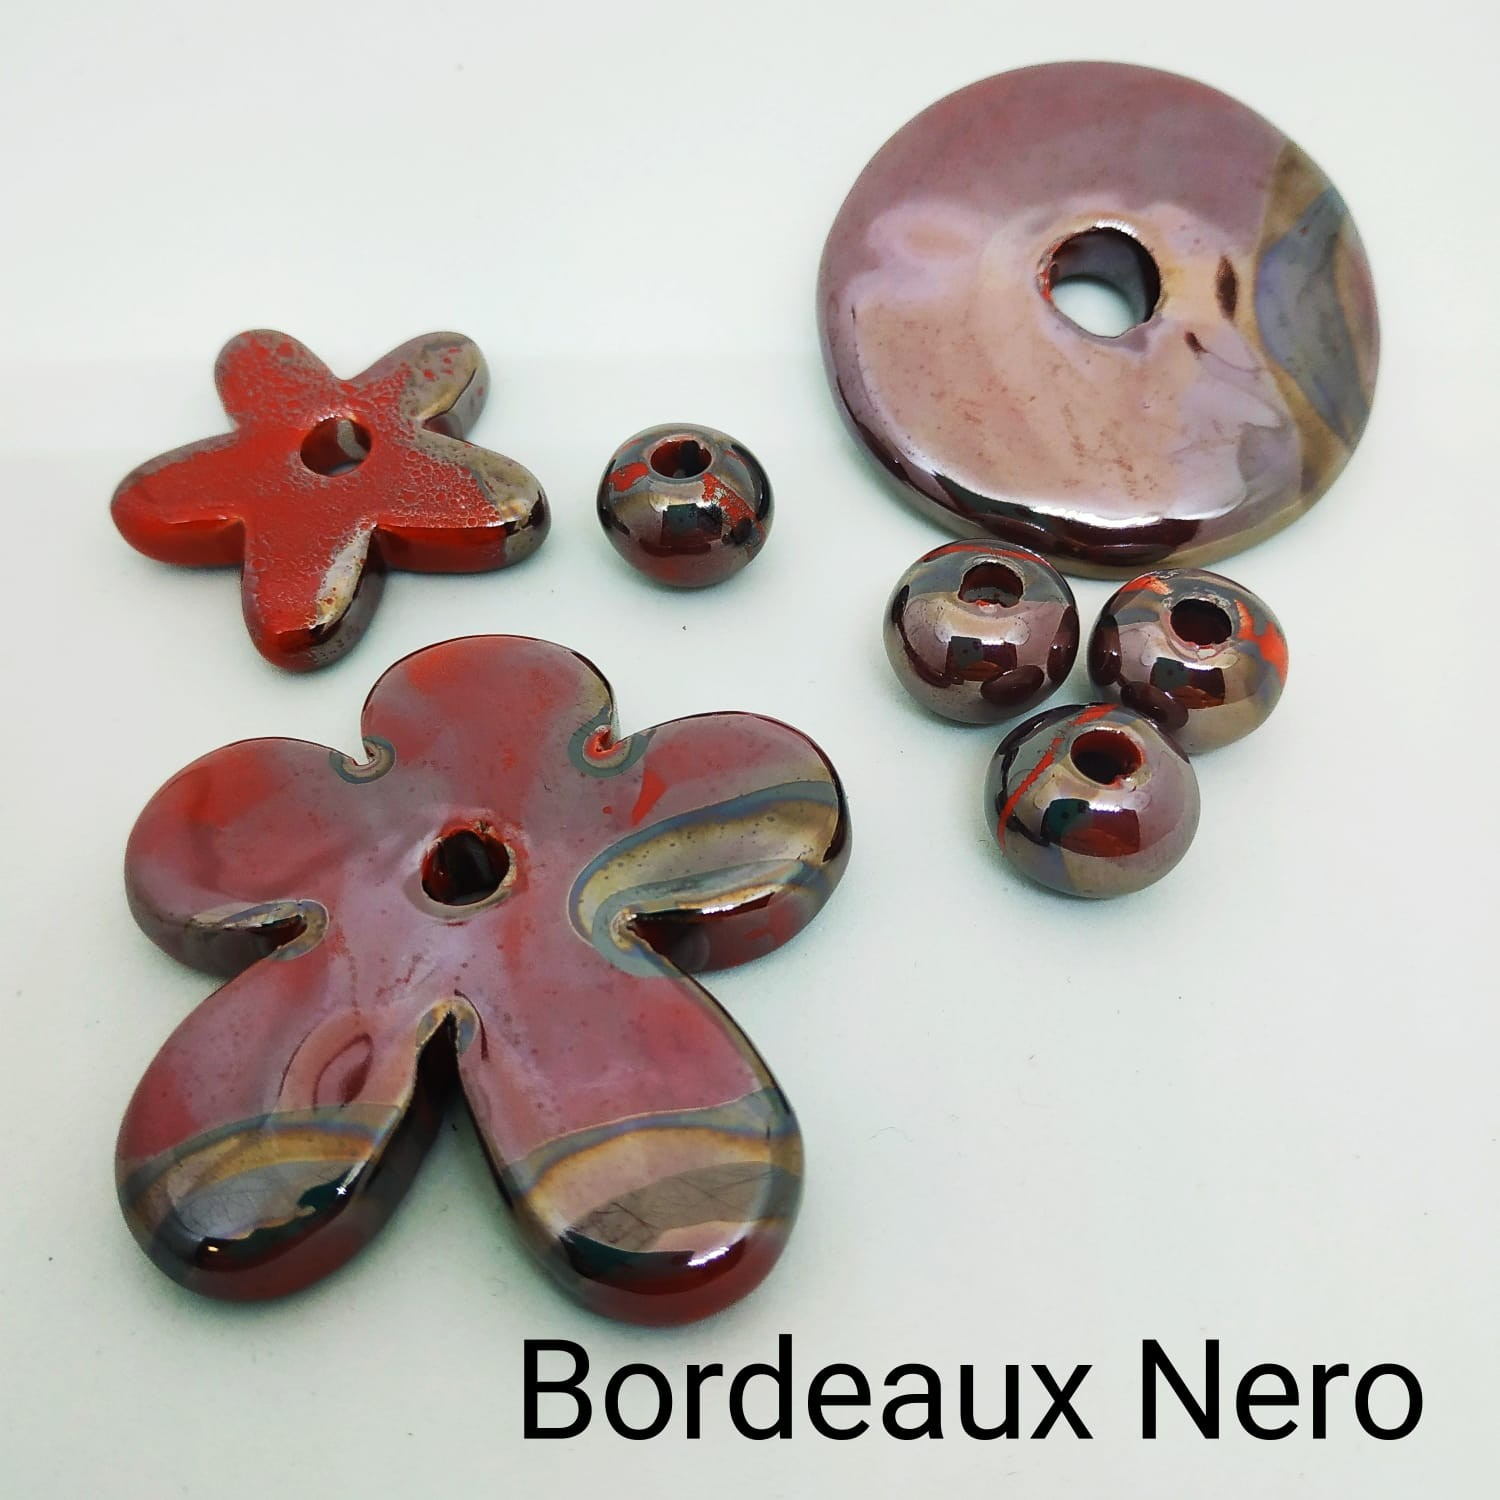 Bordeaux nero